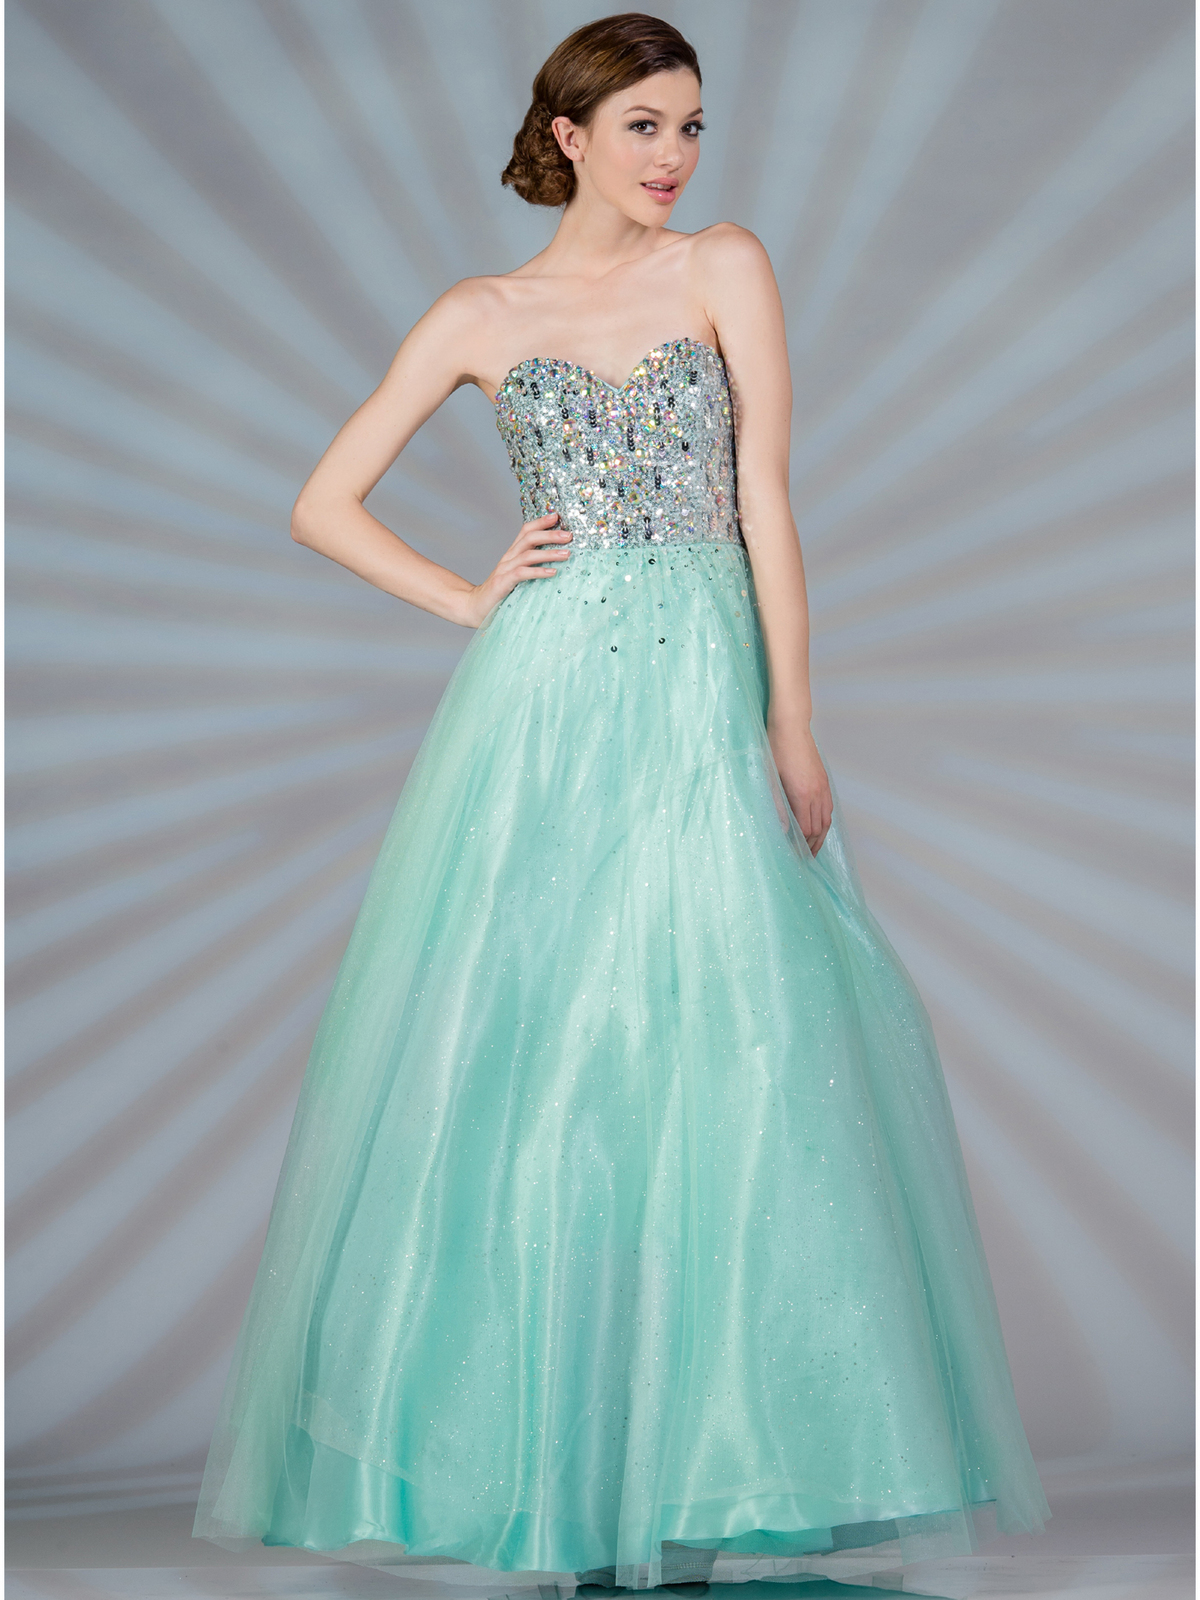 Fairy in evening dresses - Best dresses collection